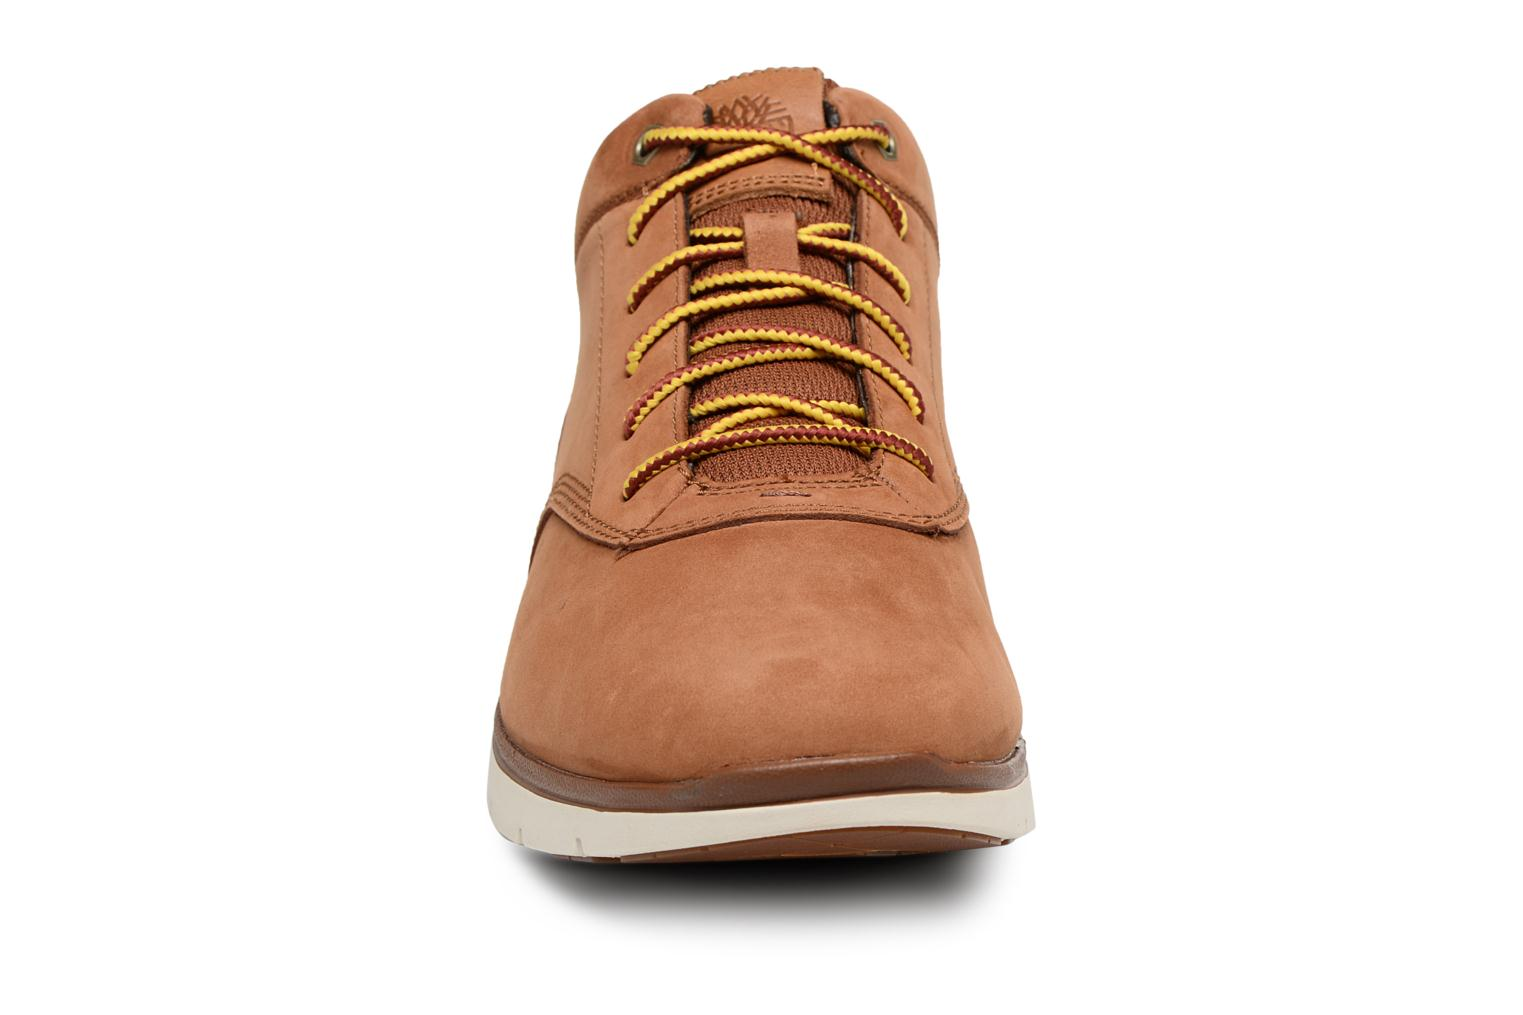 Killington Half Cab Argan Oil Nubuck